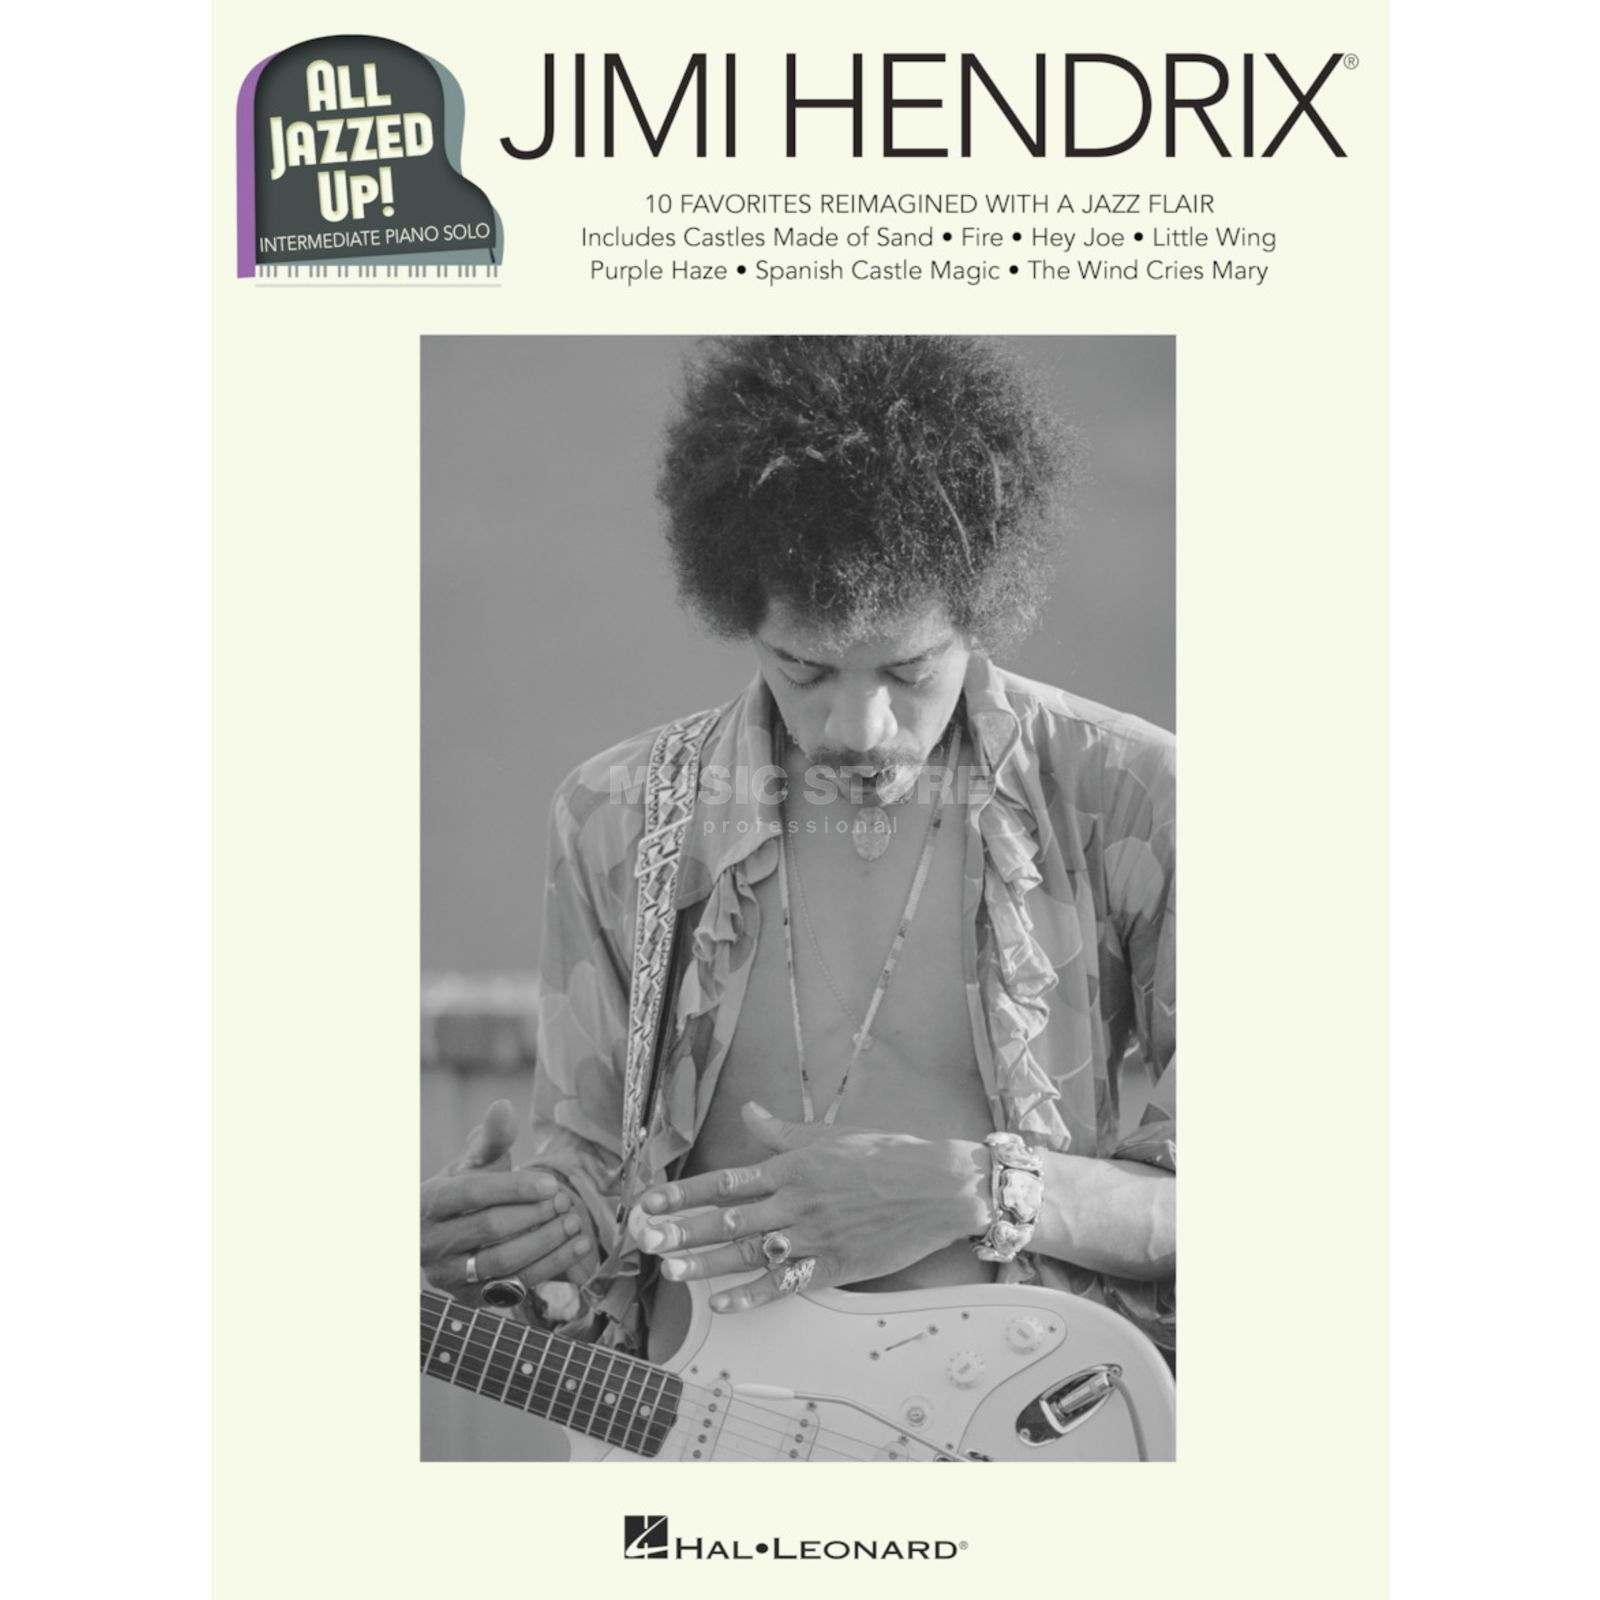 Hal Leonard All Jazzed Up!: Jimi Hendrix Product Image